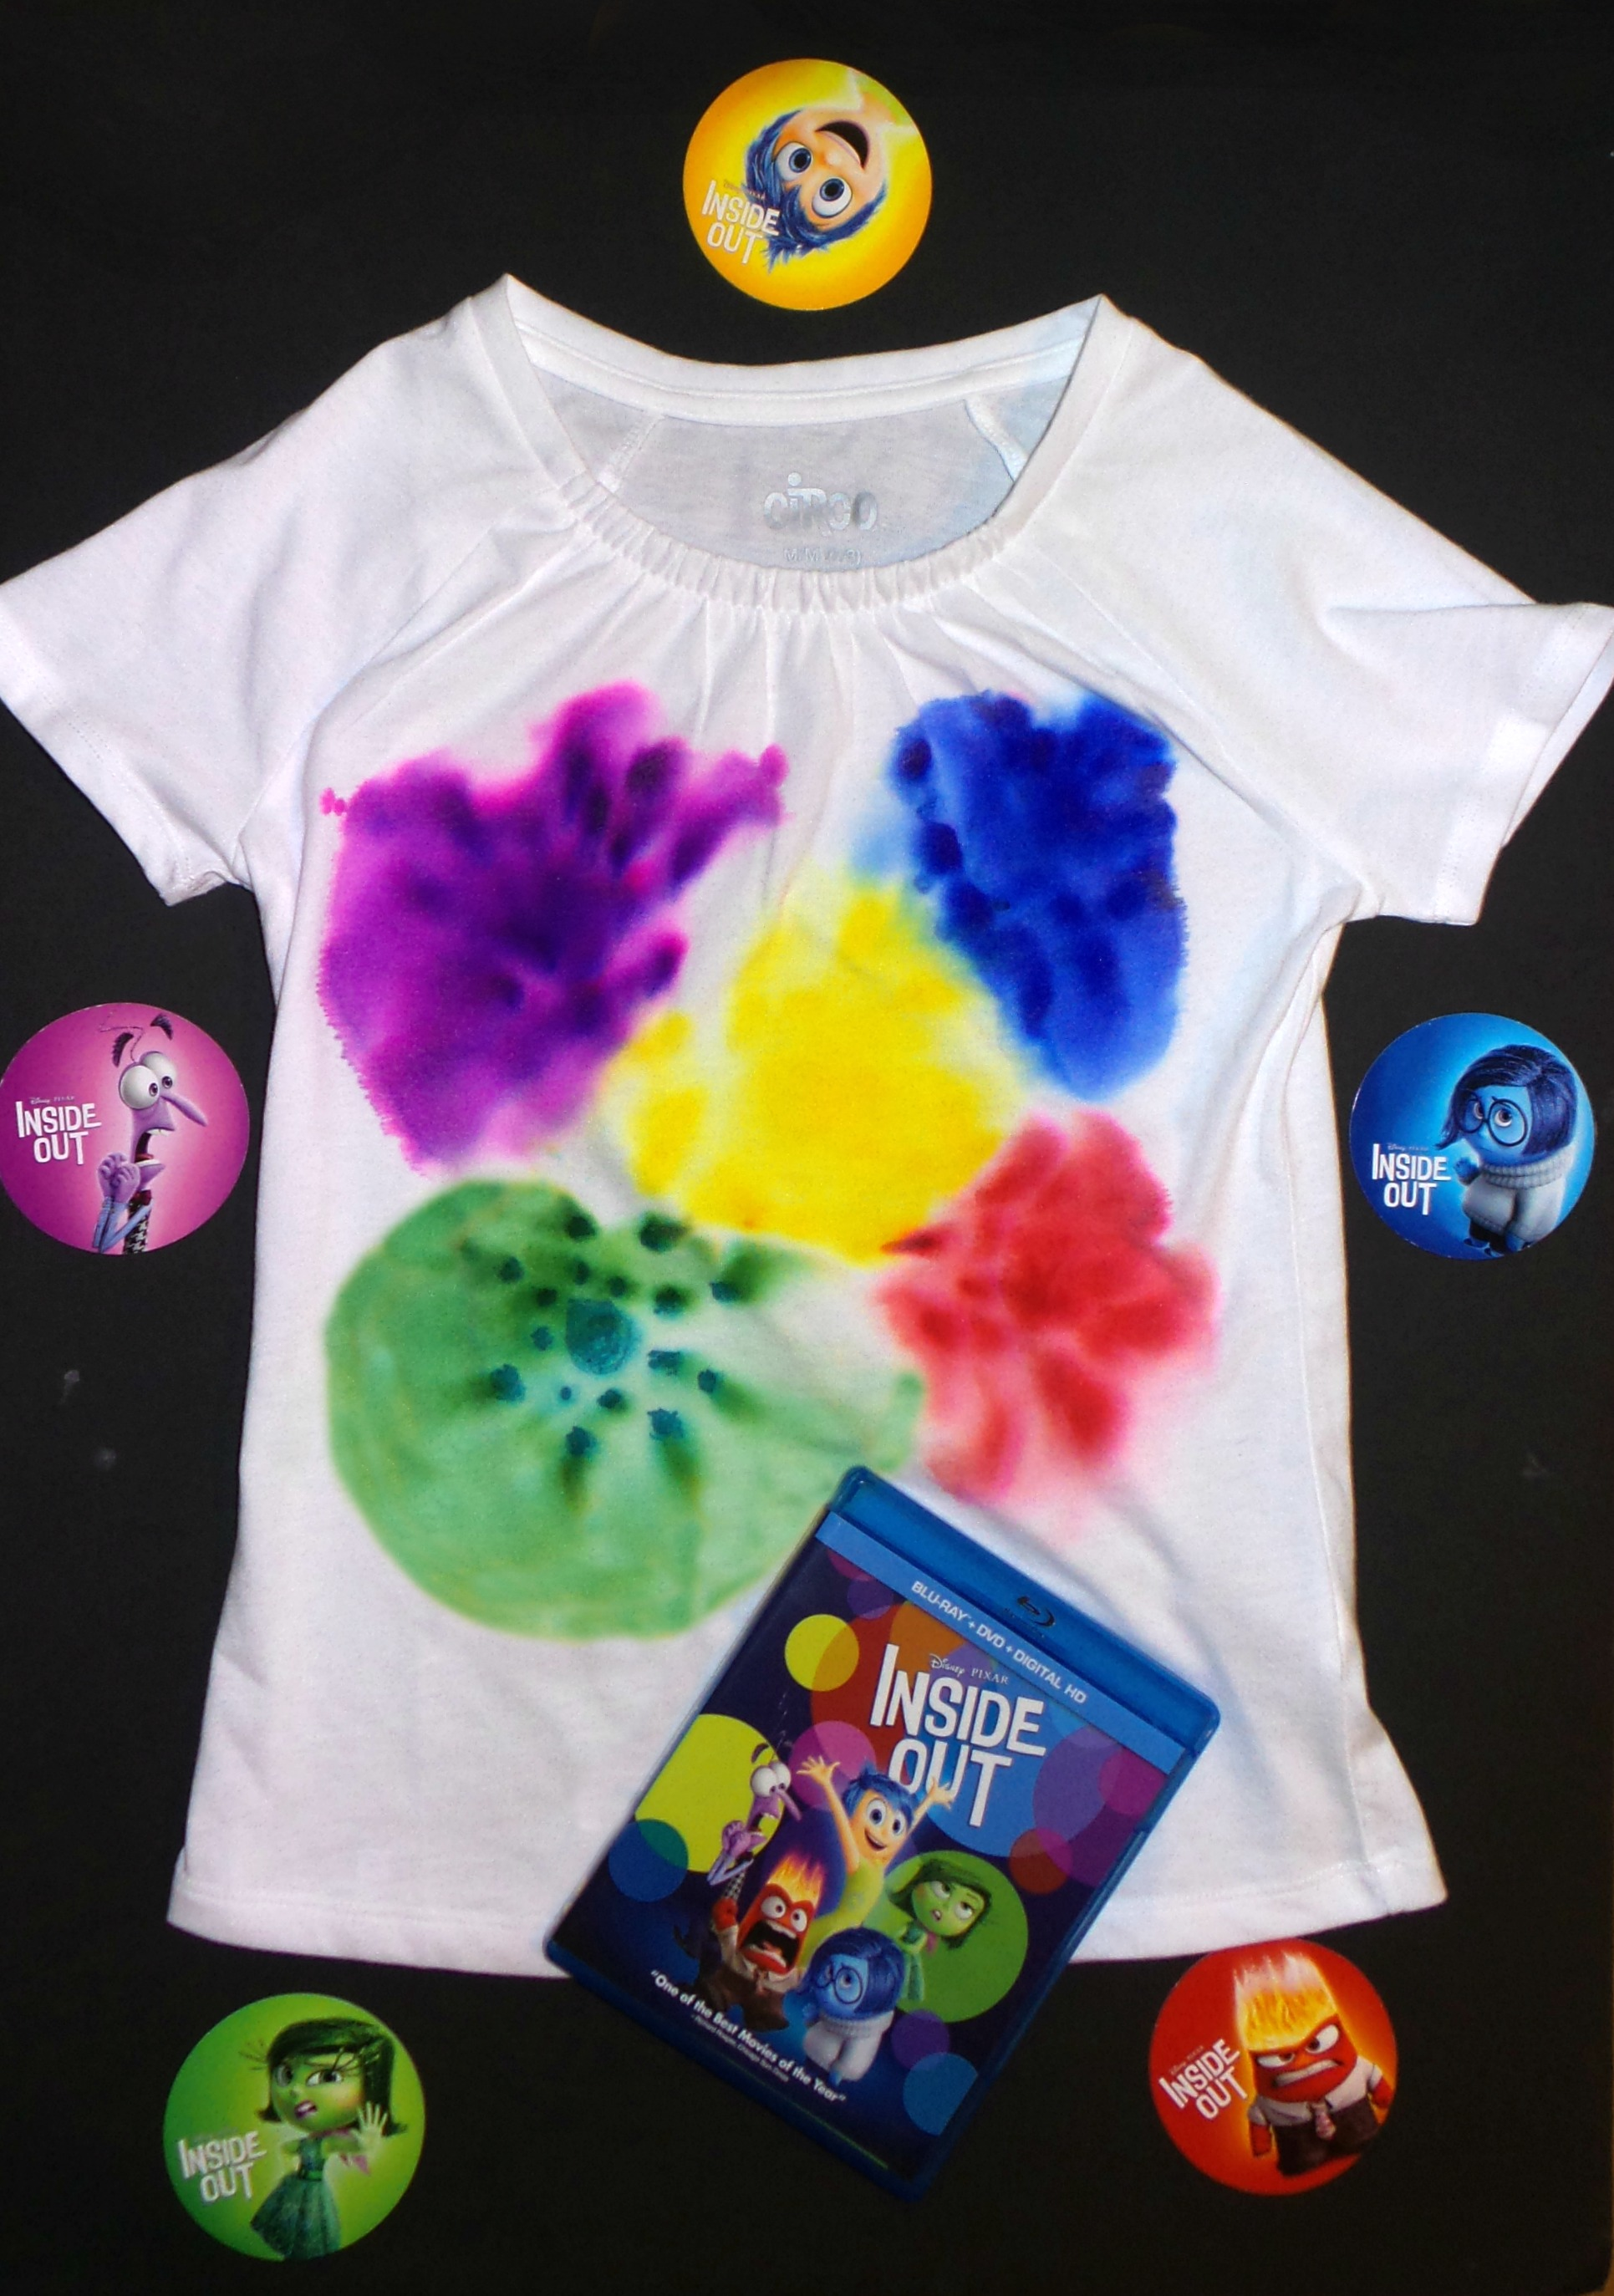 inside out character tie dye shirt